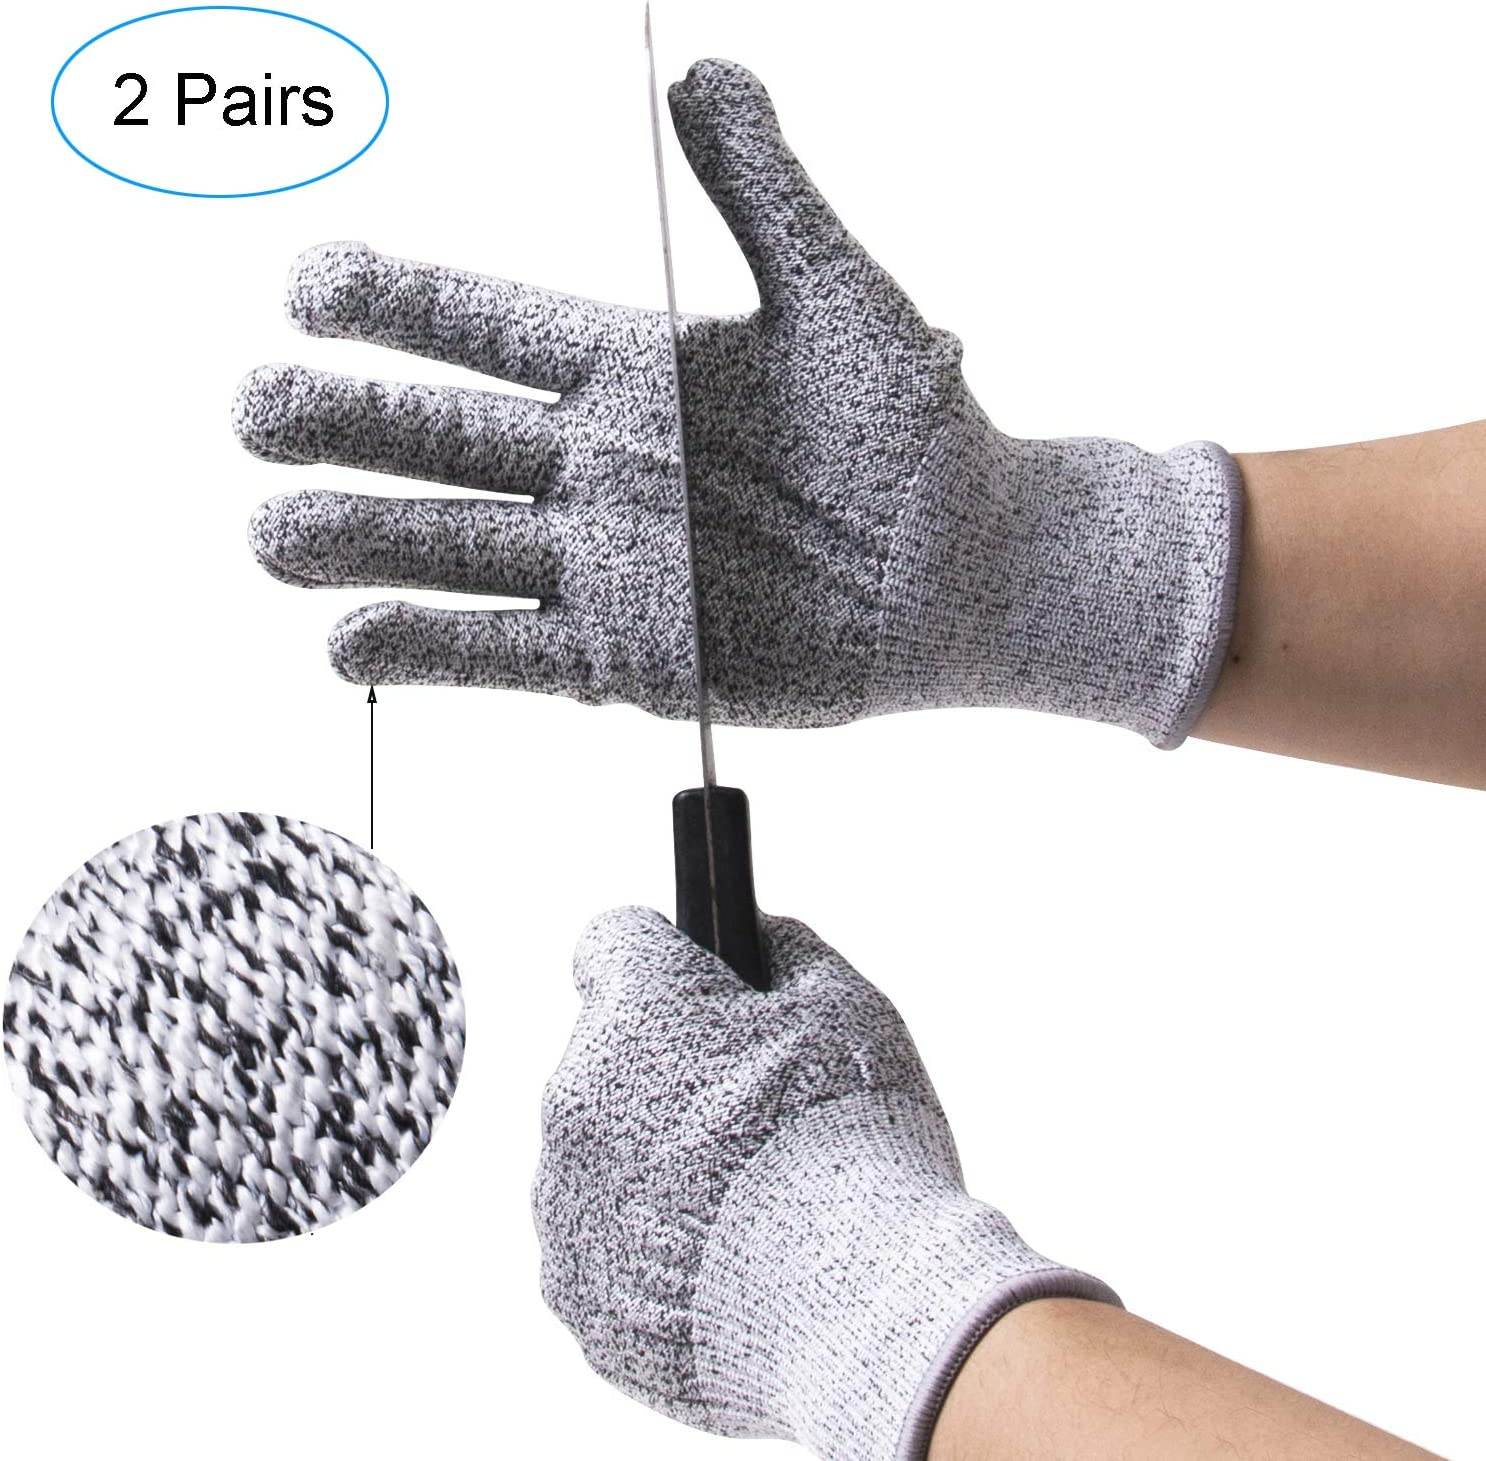 ThreeH 2 Pairs Cut Resistant Gloves Kitchen Woodworking Protective Gloves for Glass Handling Garden Yard Work GL19